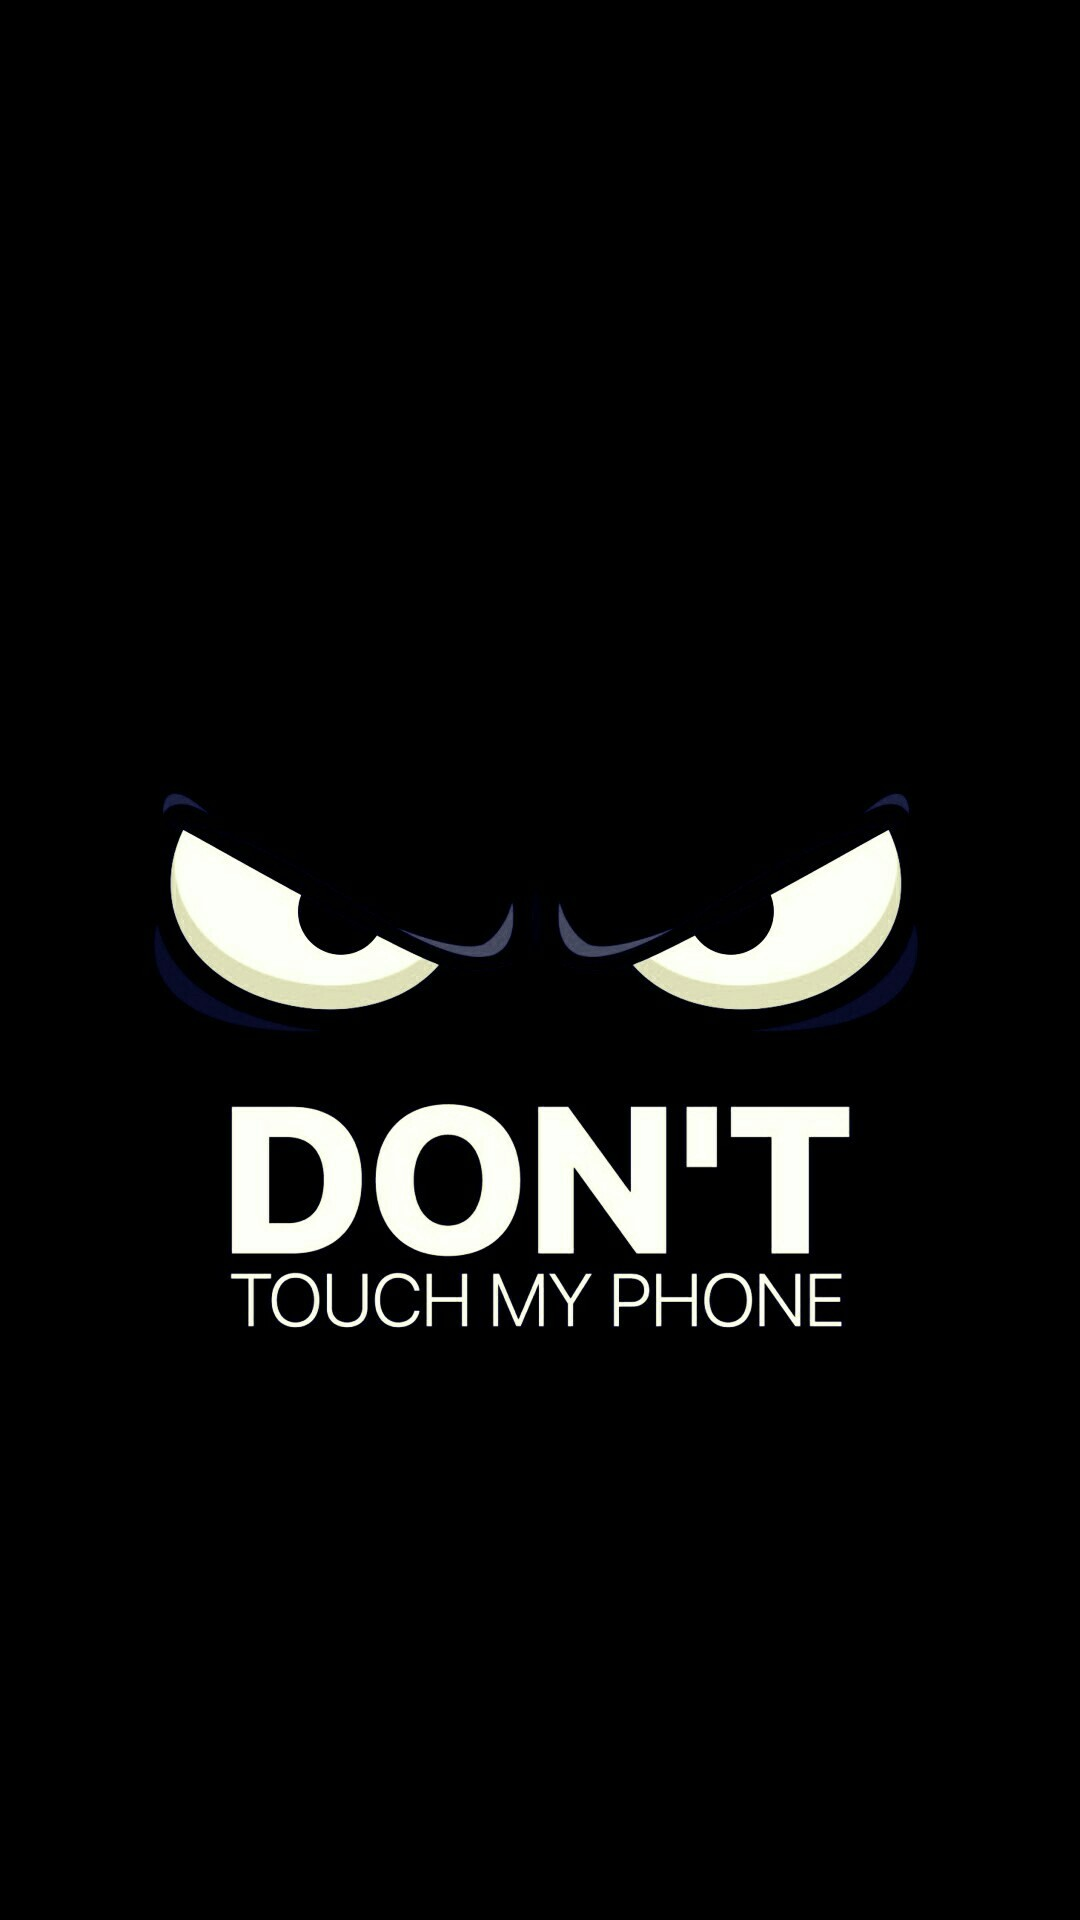 Dont touch my computer wallpaper 75 images - Don t touch my ipad wallpaper ...